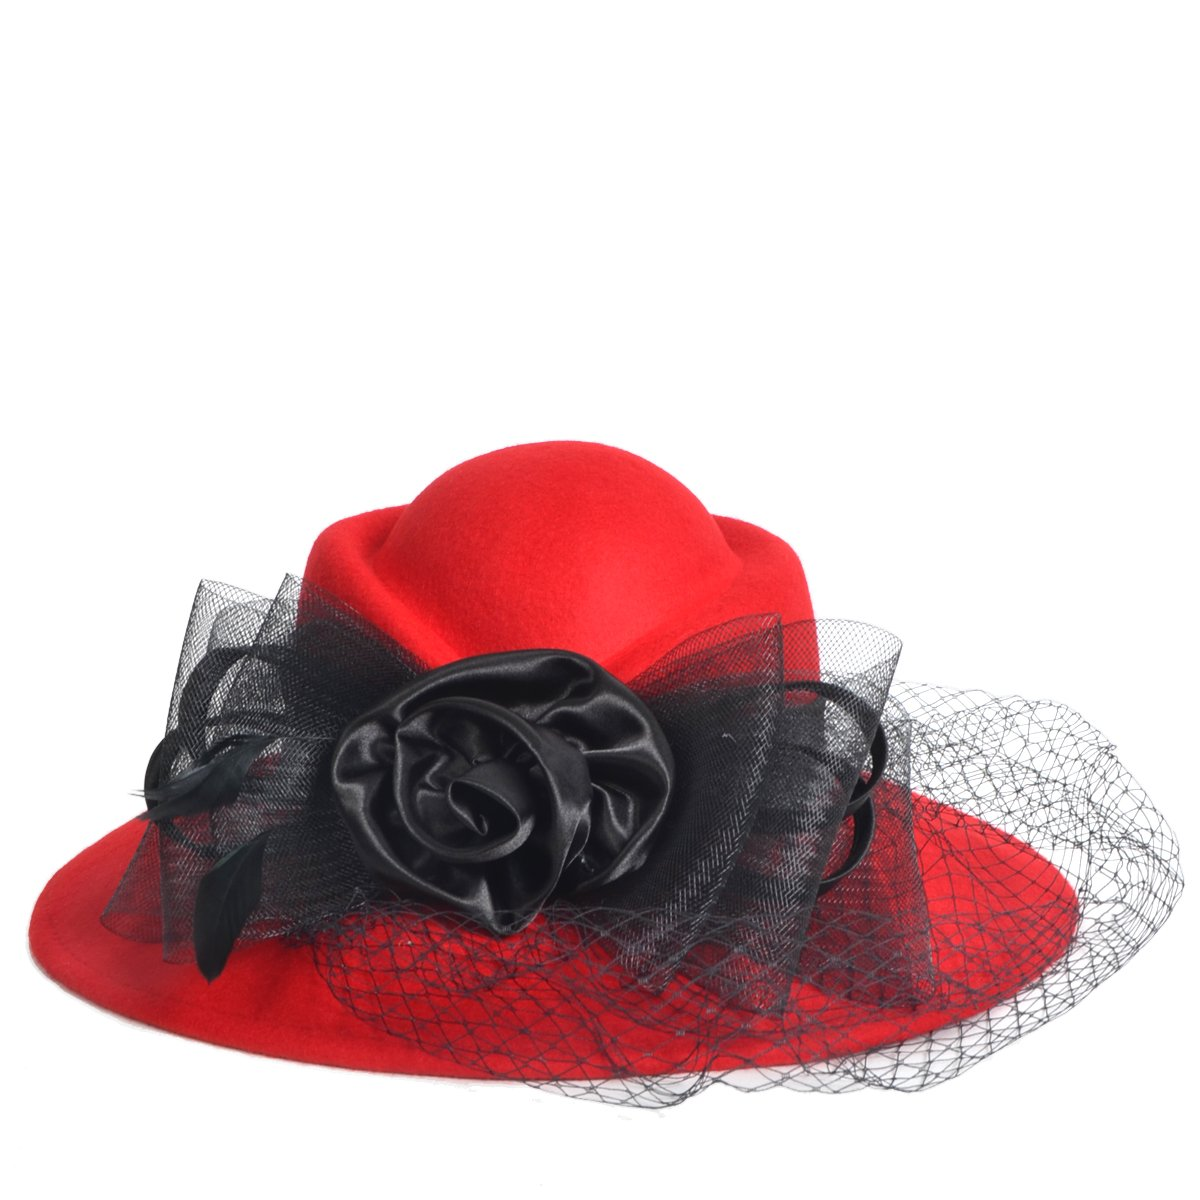 VECRY Women's Fascinator Wool Felt Hat Cocktail Party Wedding Fedora Hats (B-Red) by VECRY (Image #2)